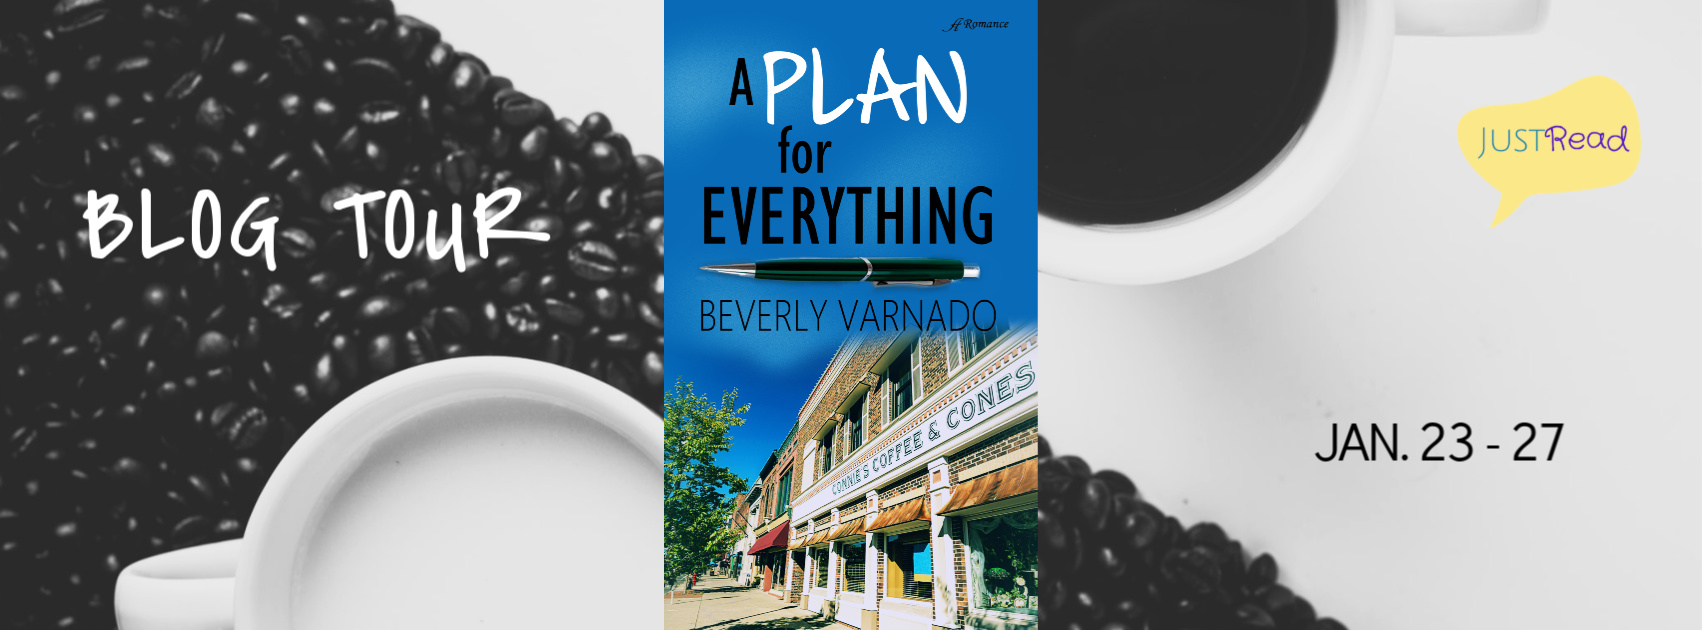 Welcome to A Plan for Everything Blog Tour & Giveaway!